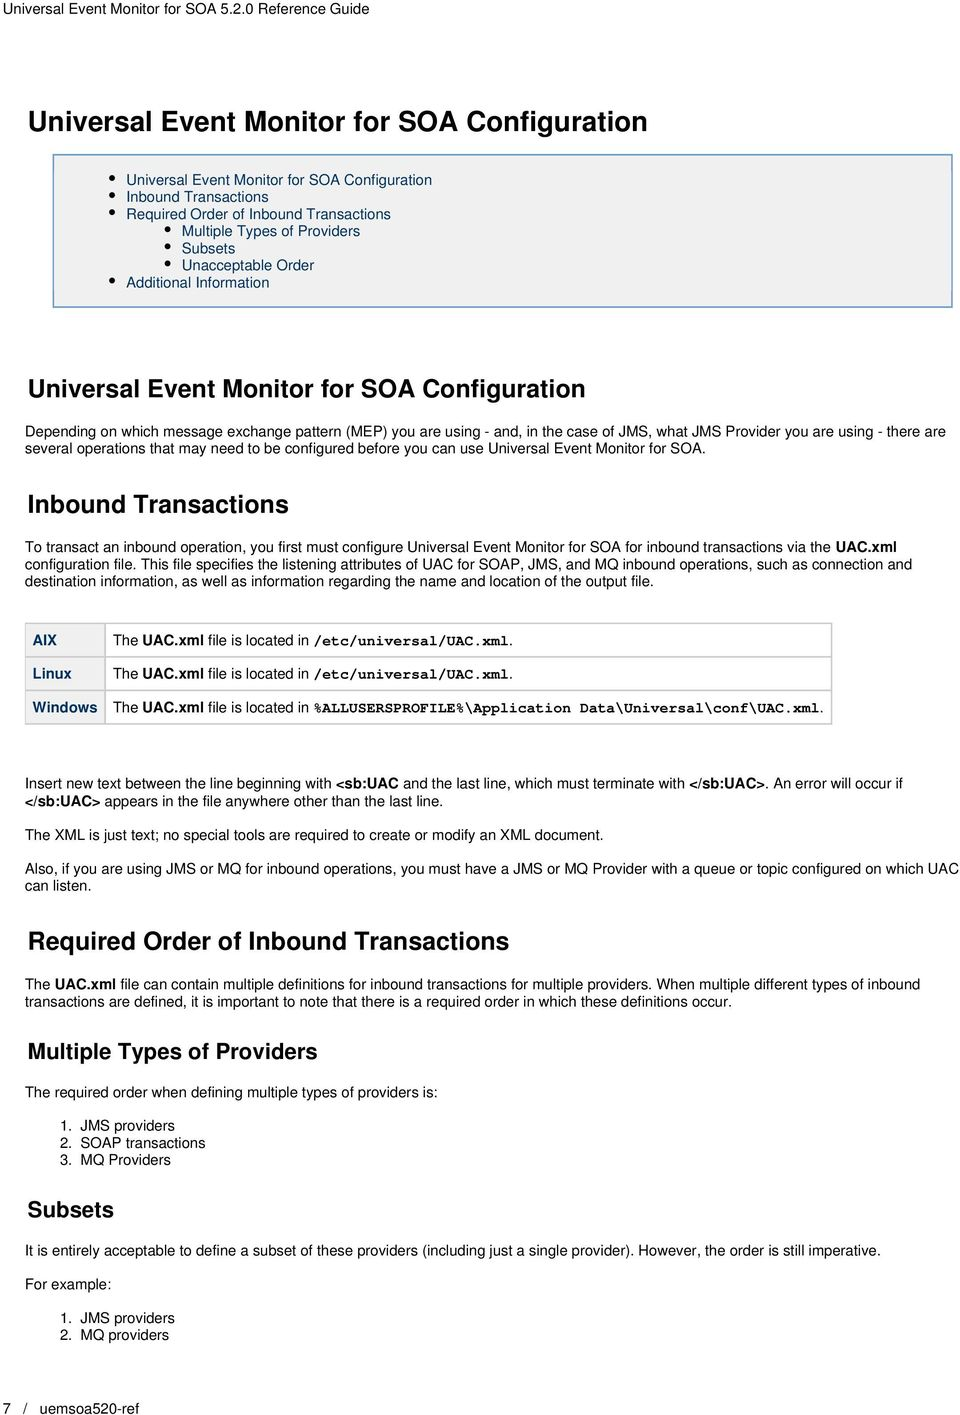 you are using - there are several operations that may need to be configured before you can use Universal Event Monitor for SOA.